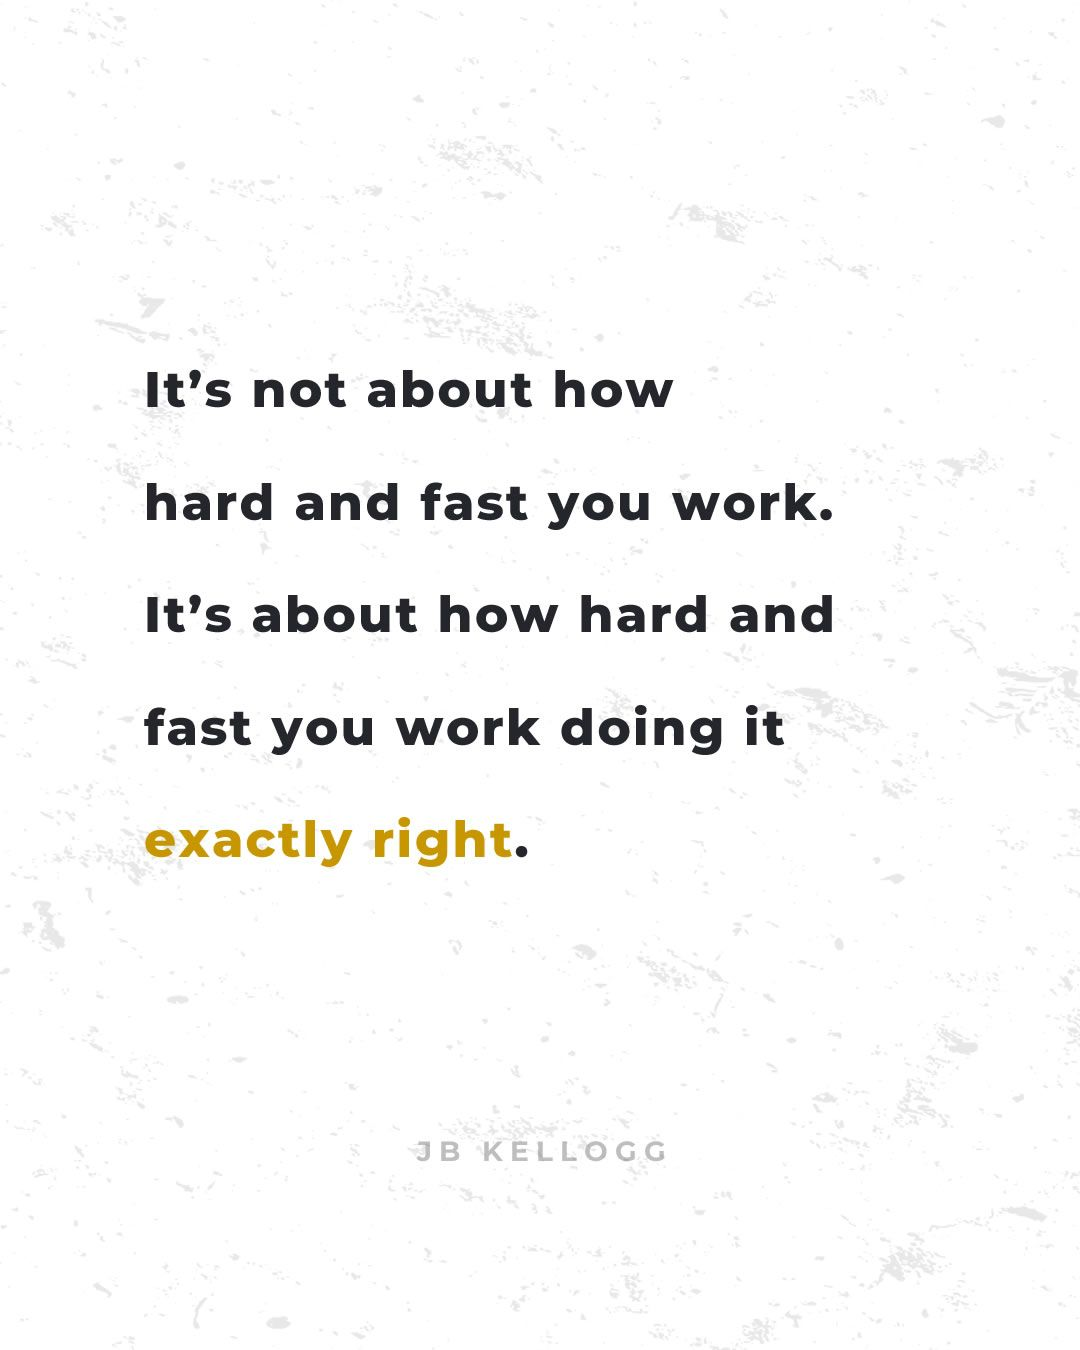 it's about how hard and fast you work doing it exactly right - quote by jb kellogg.jpg